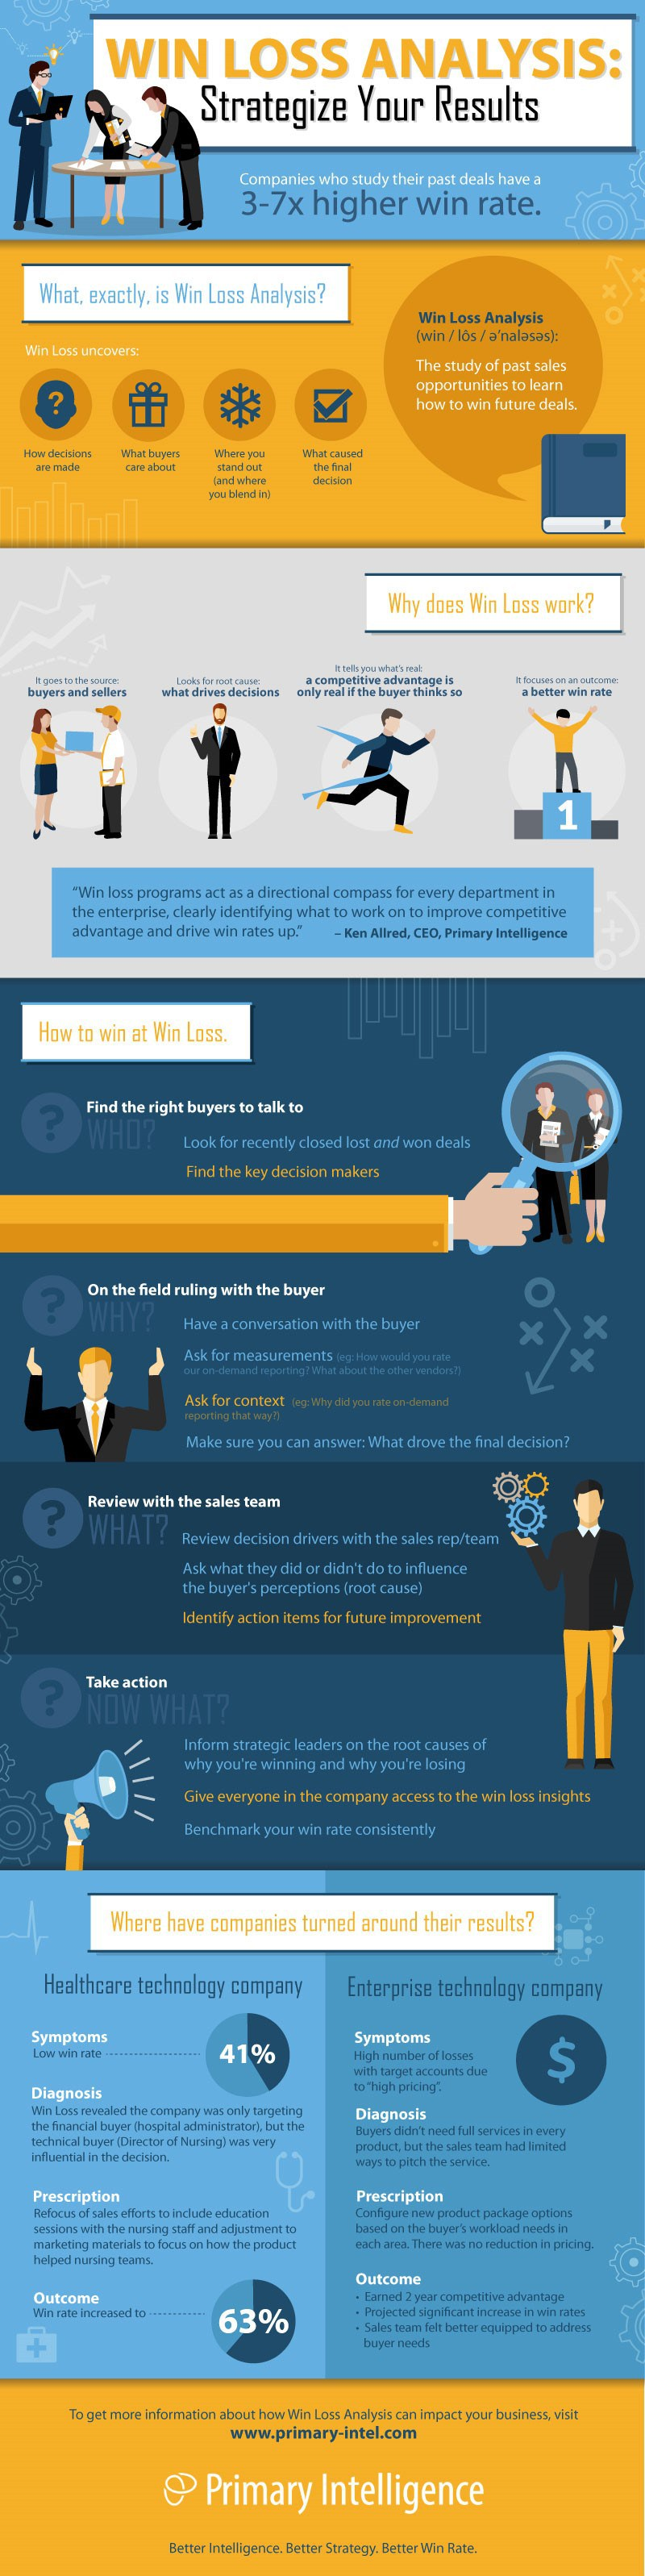 Win-Loss-Analysis-Strategize-Your-Results-infographic